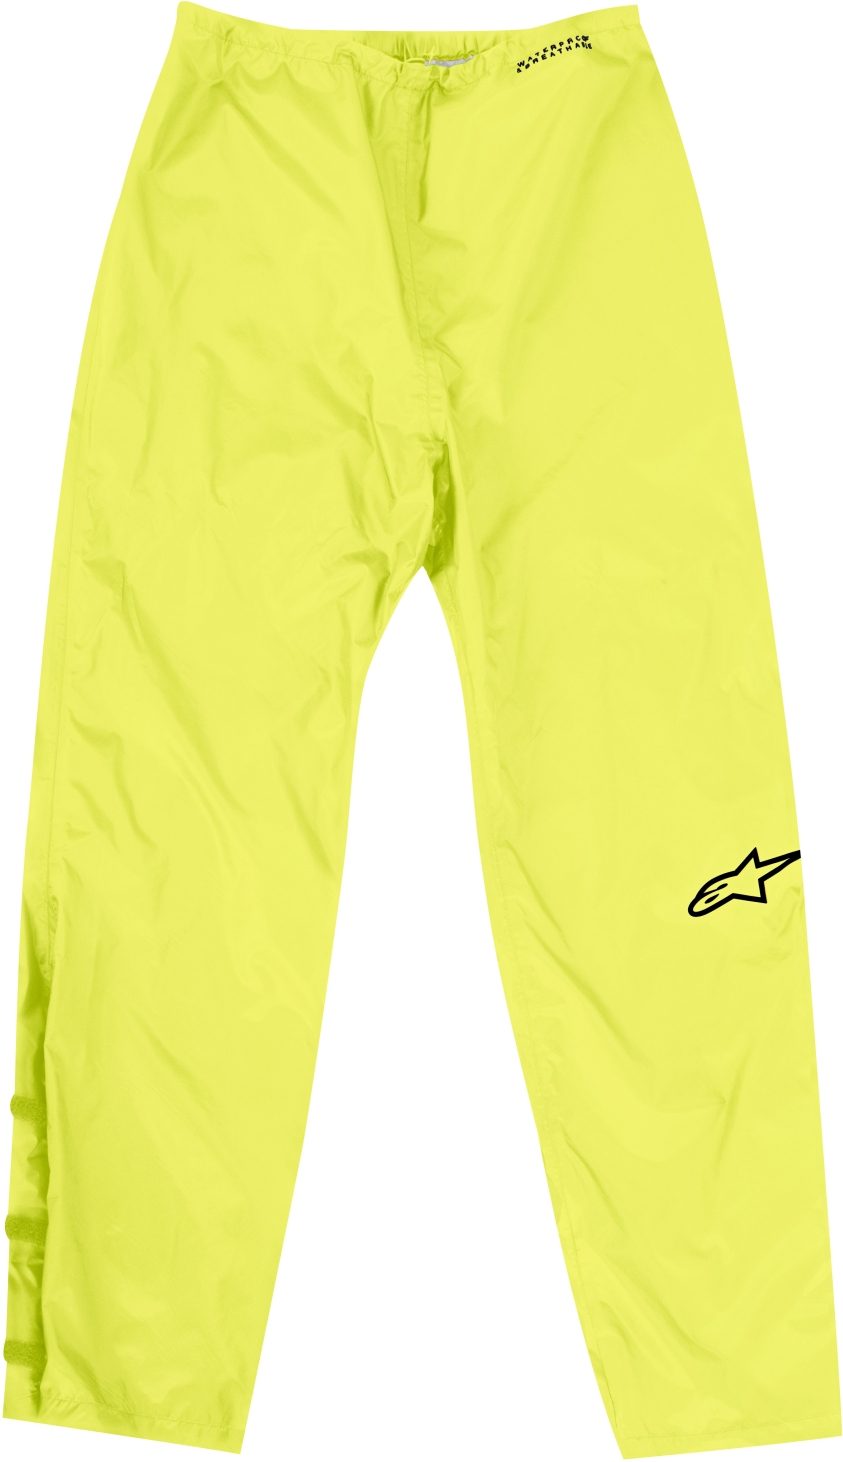 QUICK SEAL OUT - GIACCA + PANTALONE IMPERMEABILE